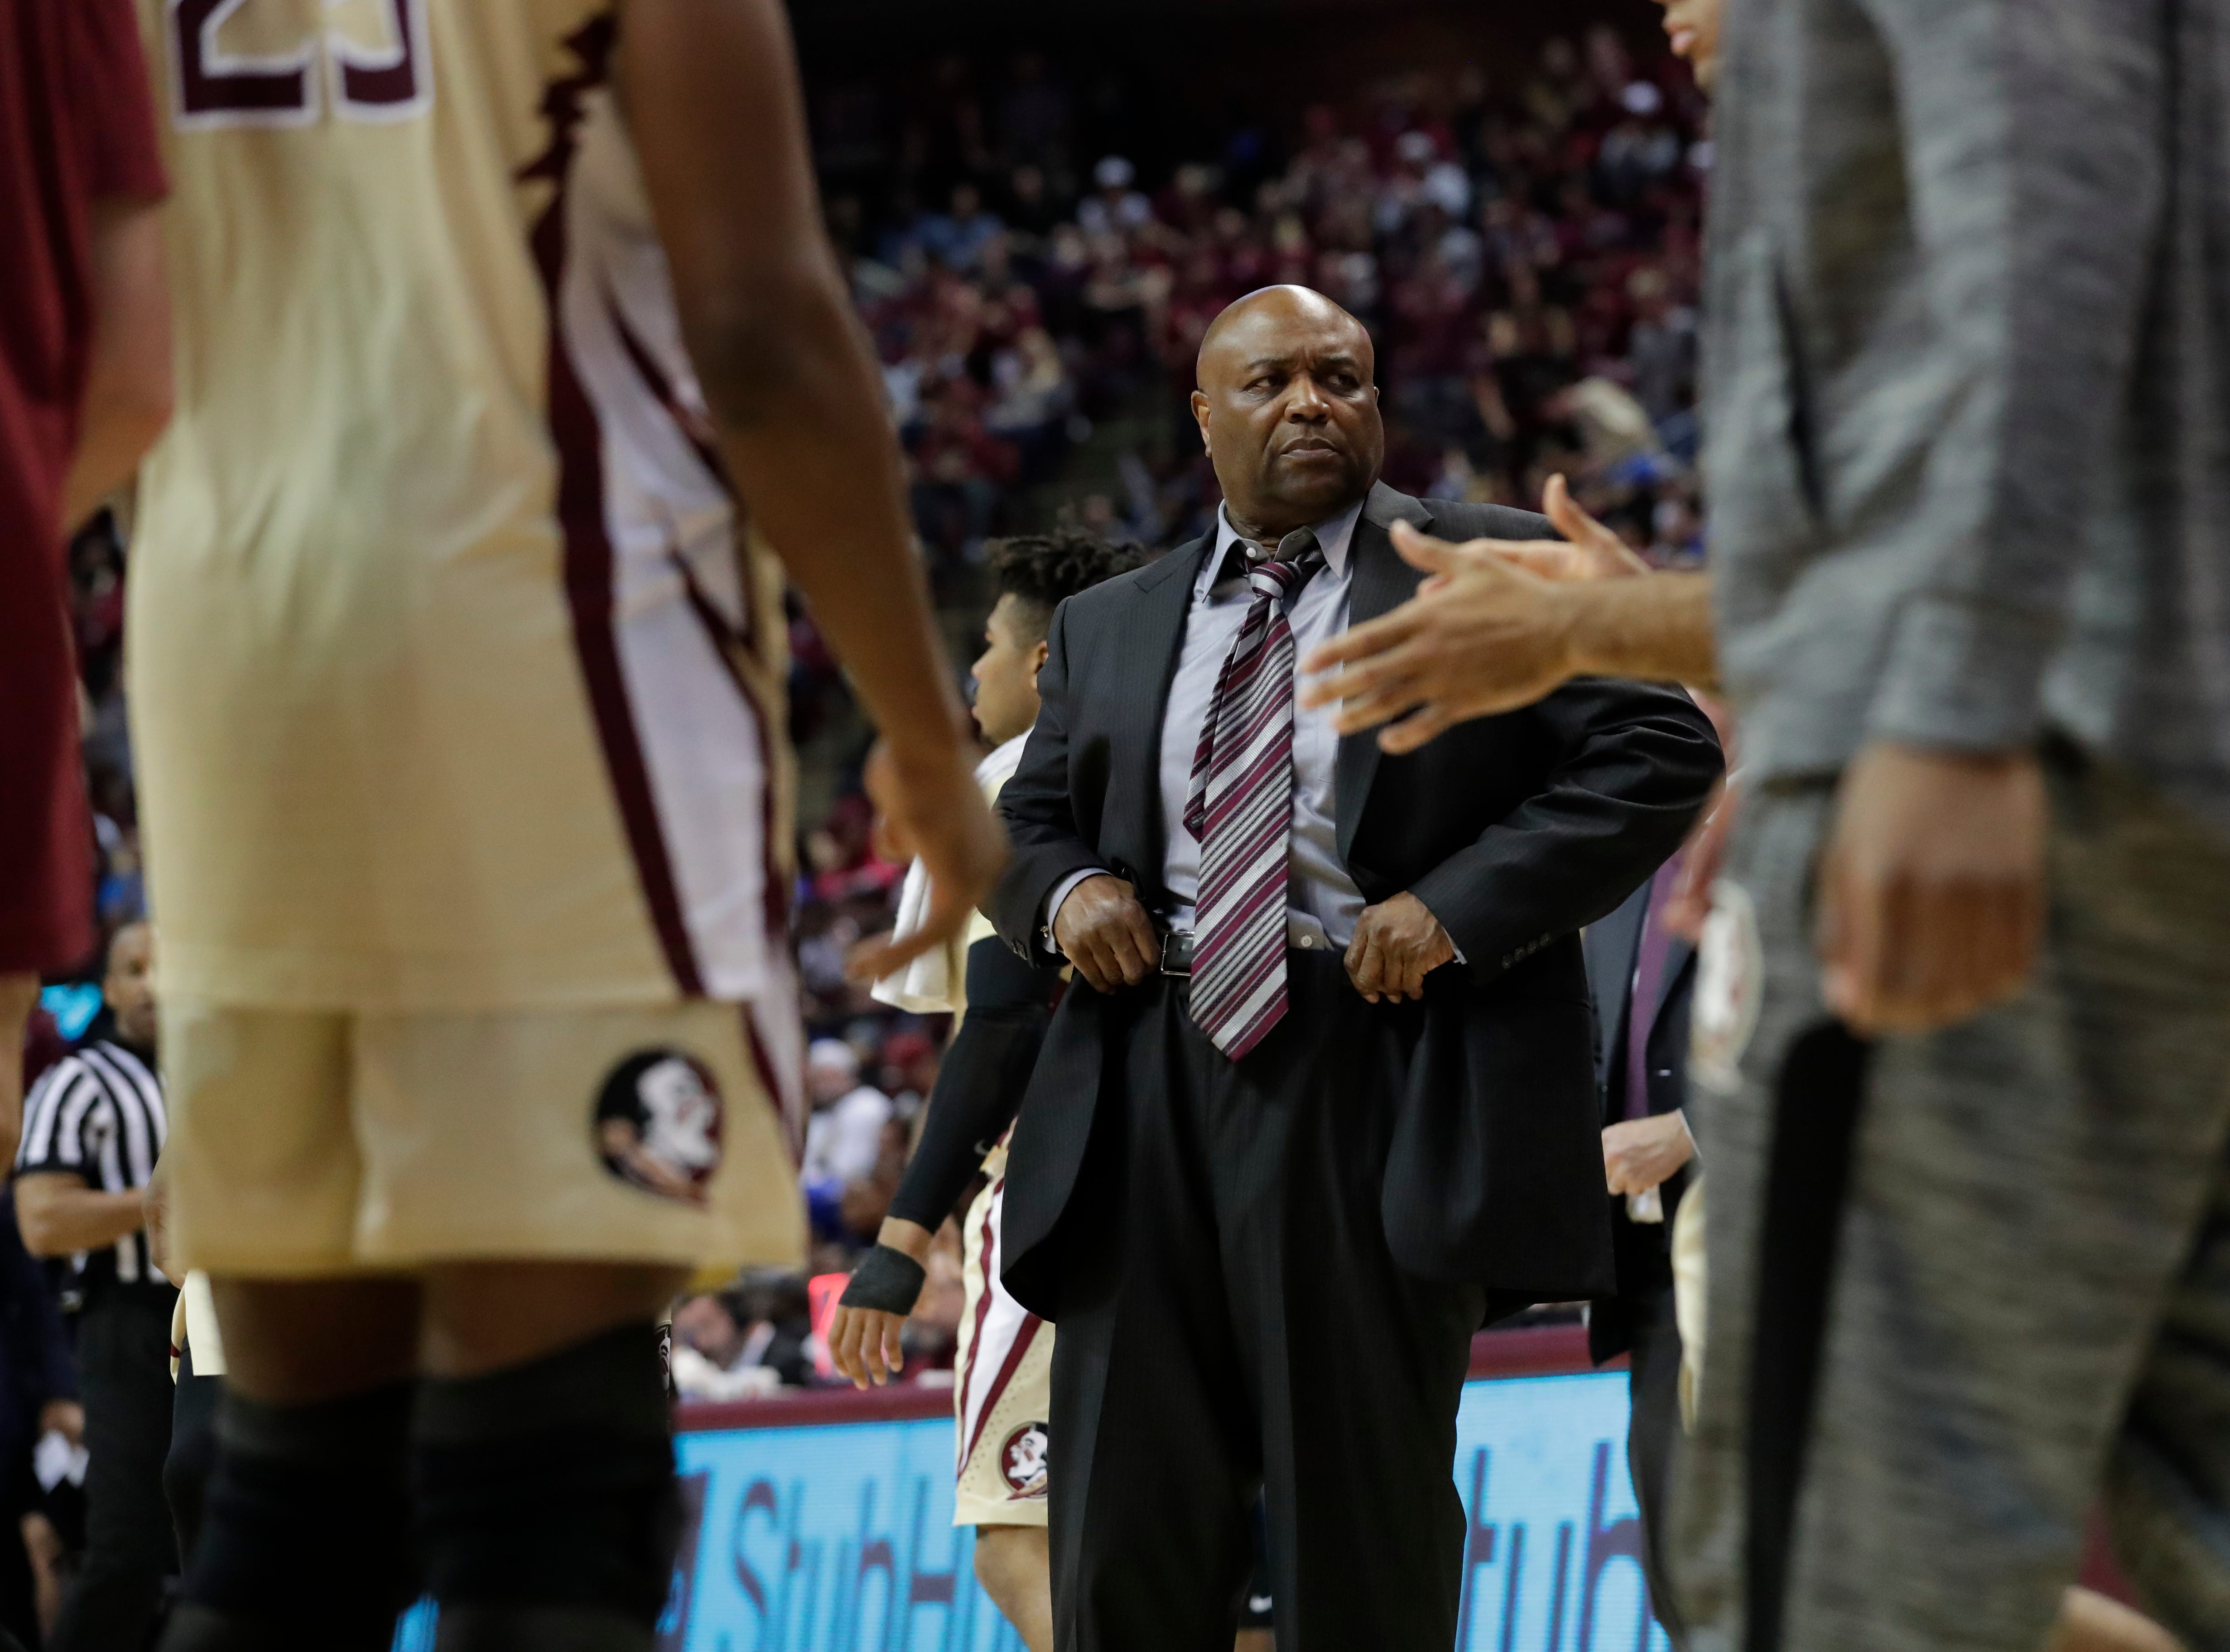 Florida State head coach Leonard Hamilton pulls up his pants as during a timeout. Ranked 13 in the ACC, the Florida State Seminoles host the number 1 team, the Duke Blue Devils, at the Tucker Civic Center, Saturday, Jan. 12, 2019.